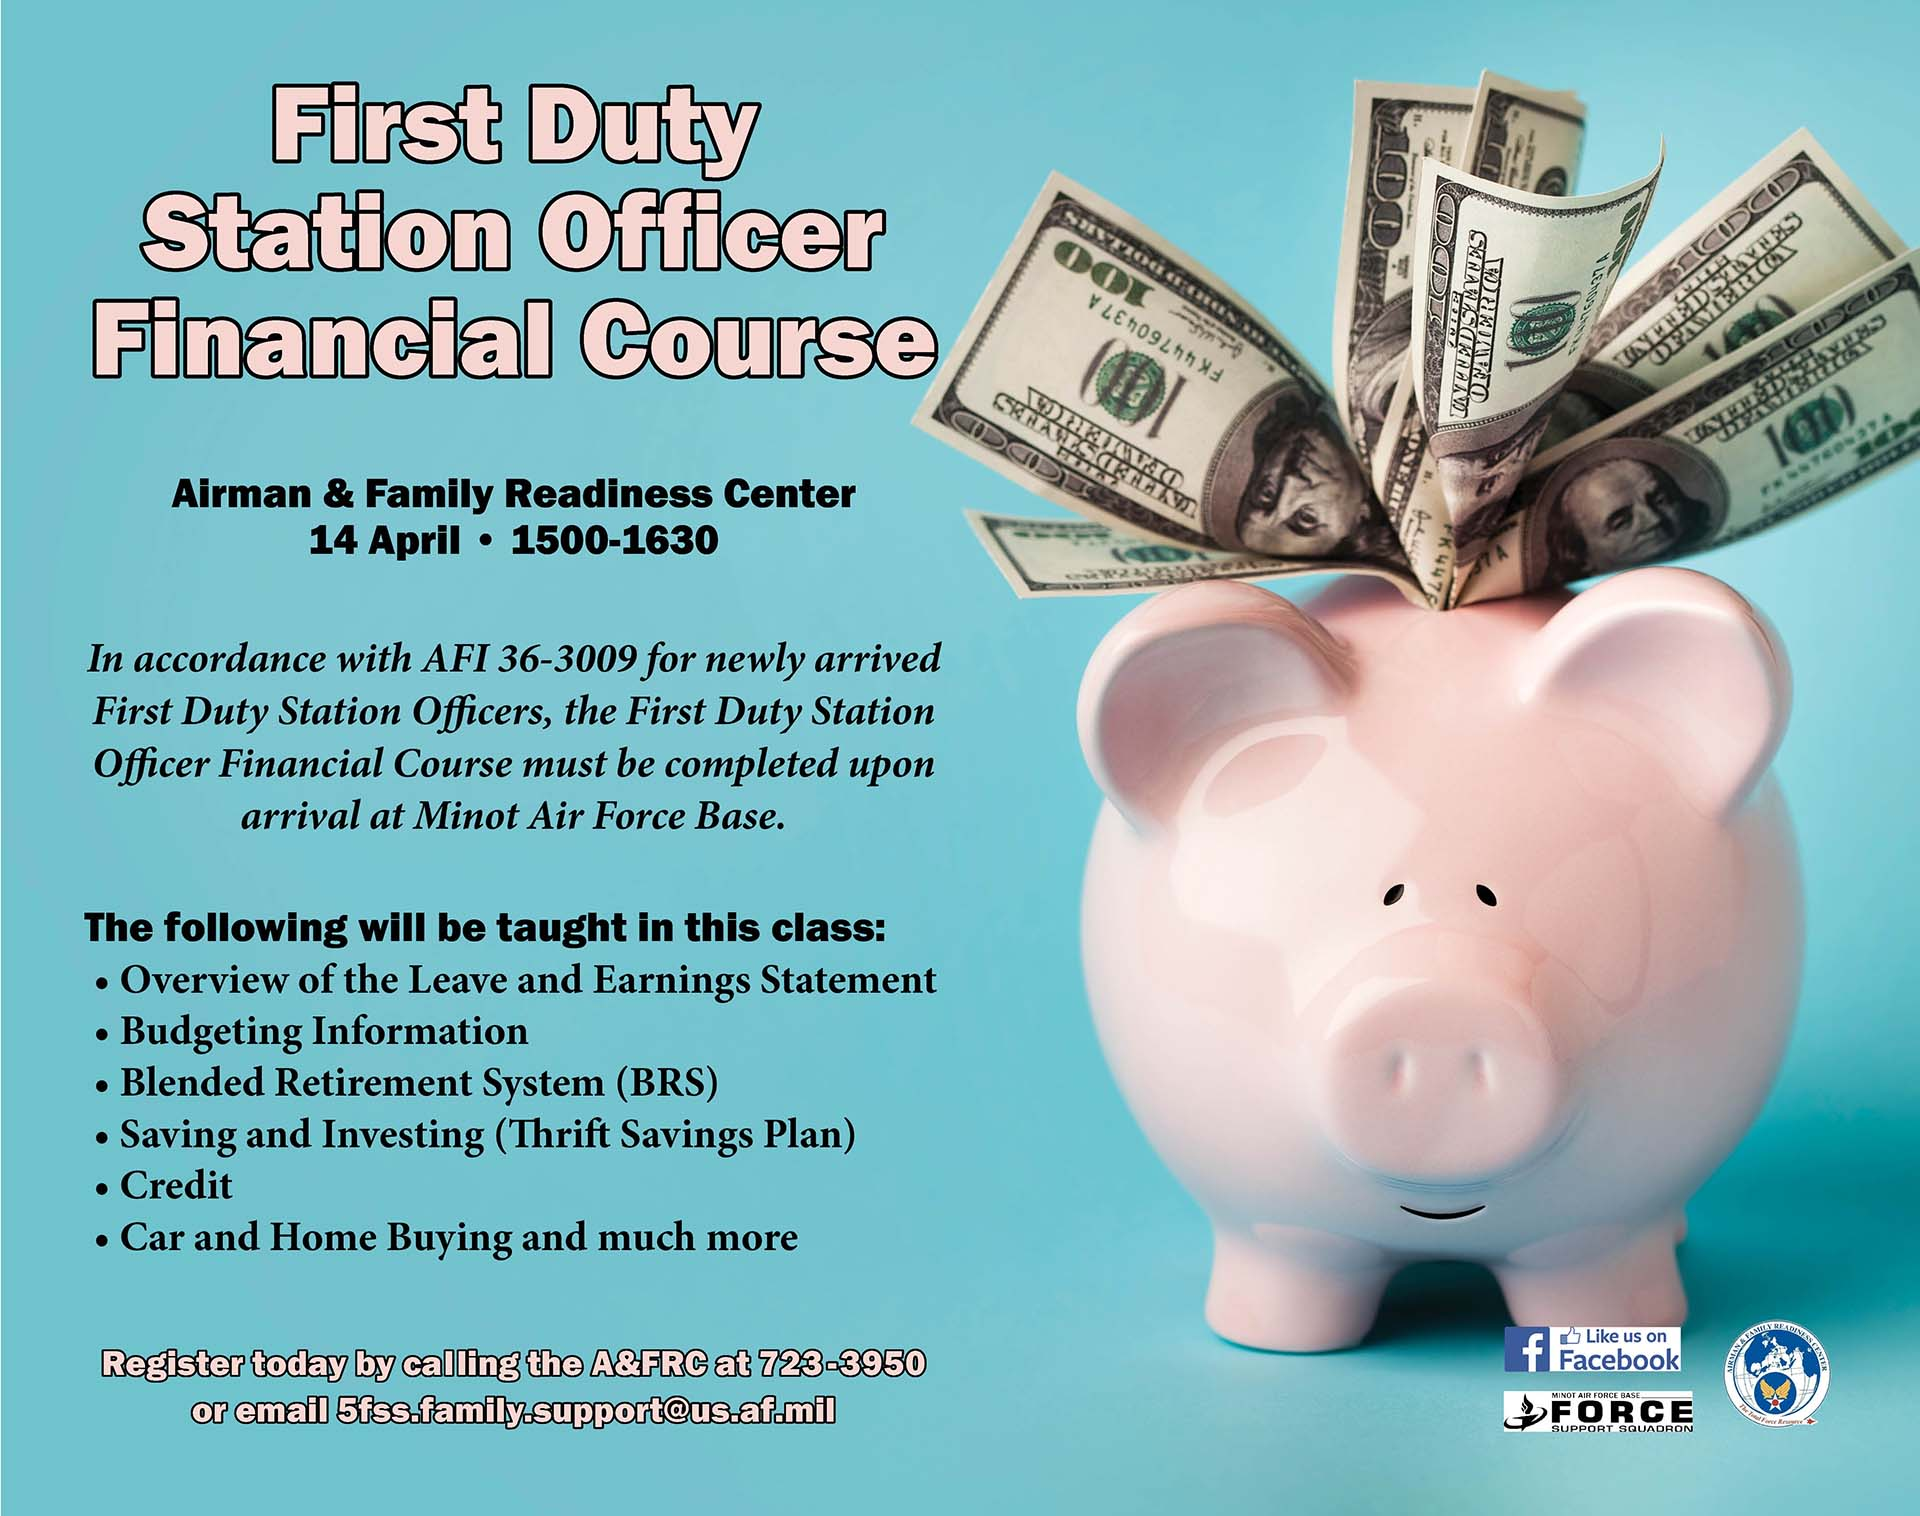 First Duty Station Officer Financial Course